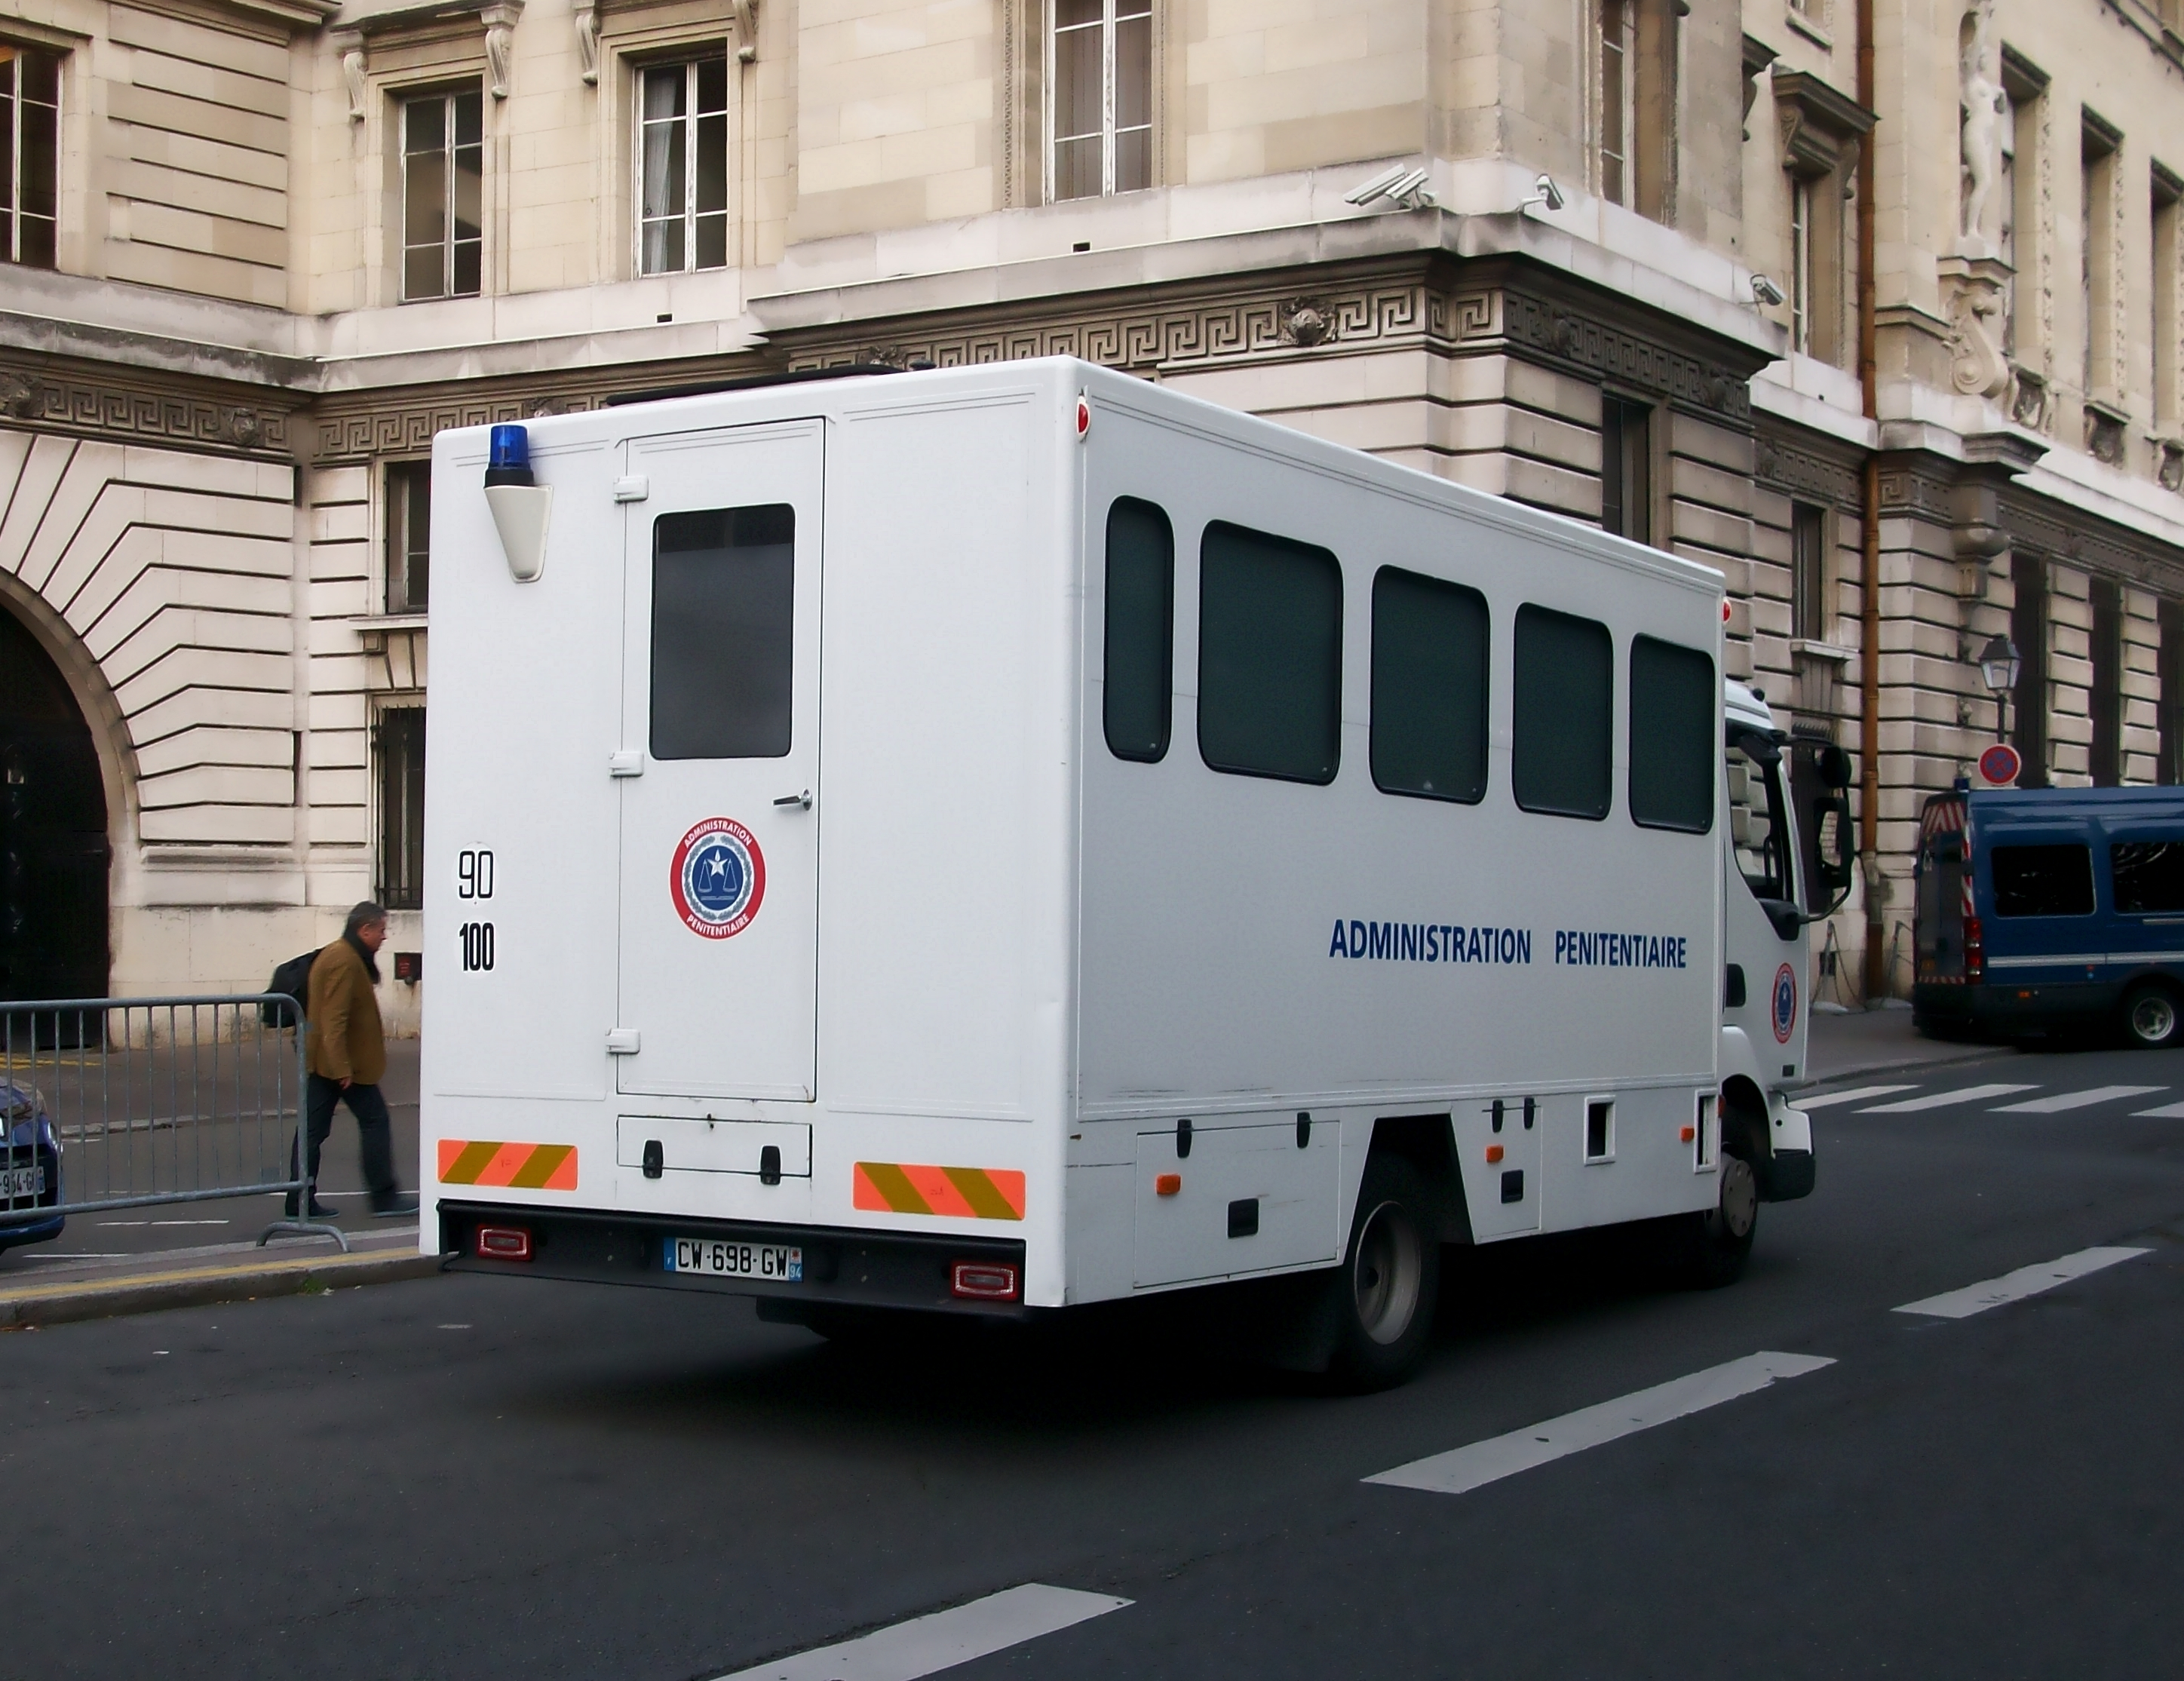 https://upload.wikimedia.org/wikipedia/commons/f/f9/Renault_Midlum,_Administration_p%C3%A9nitentiaire_Paris,_septembre_2013_-_2.JPG